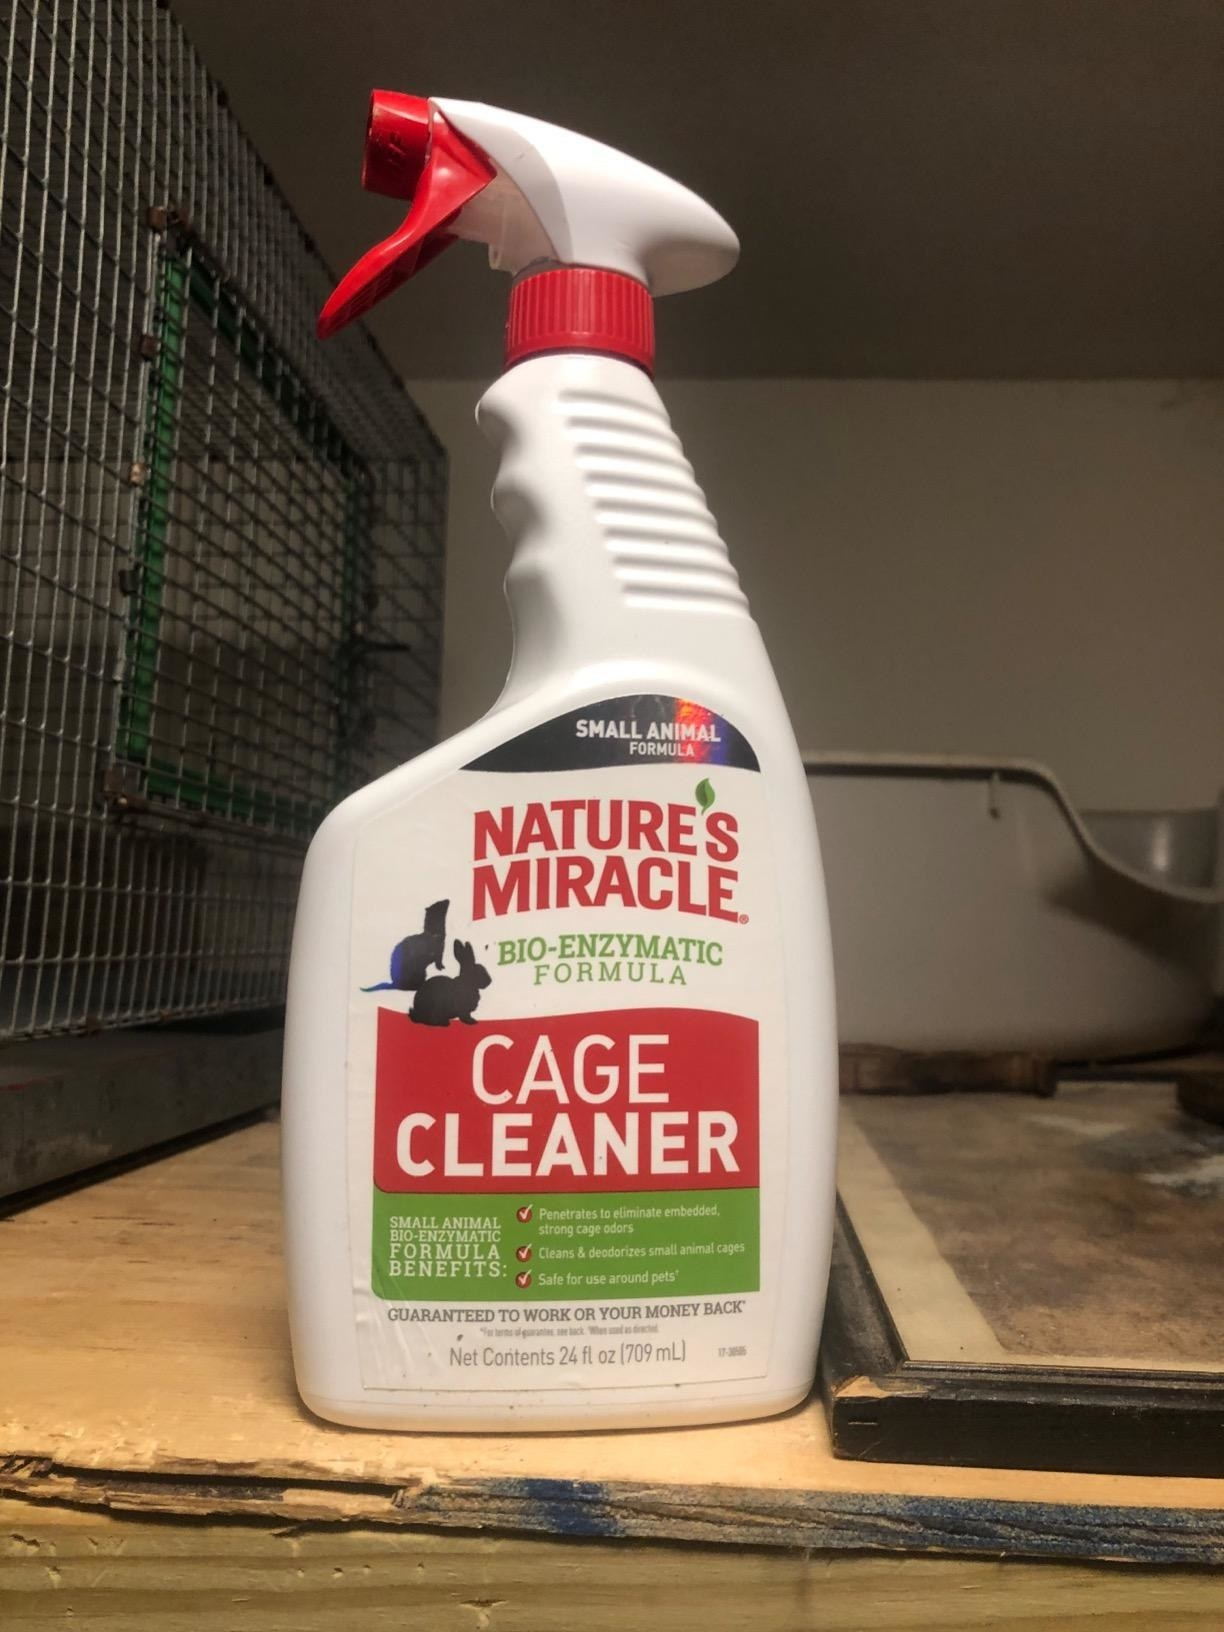 The cleaner, which comes in a spray bottle